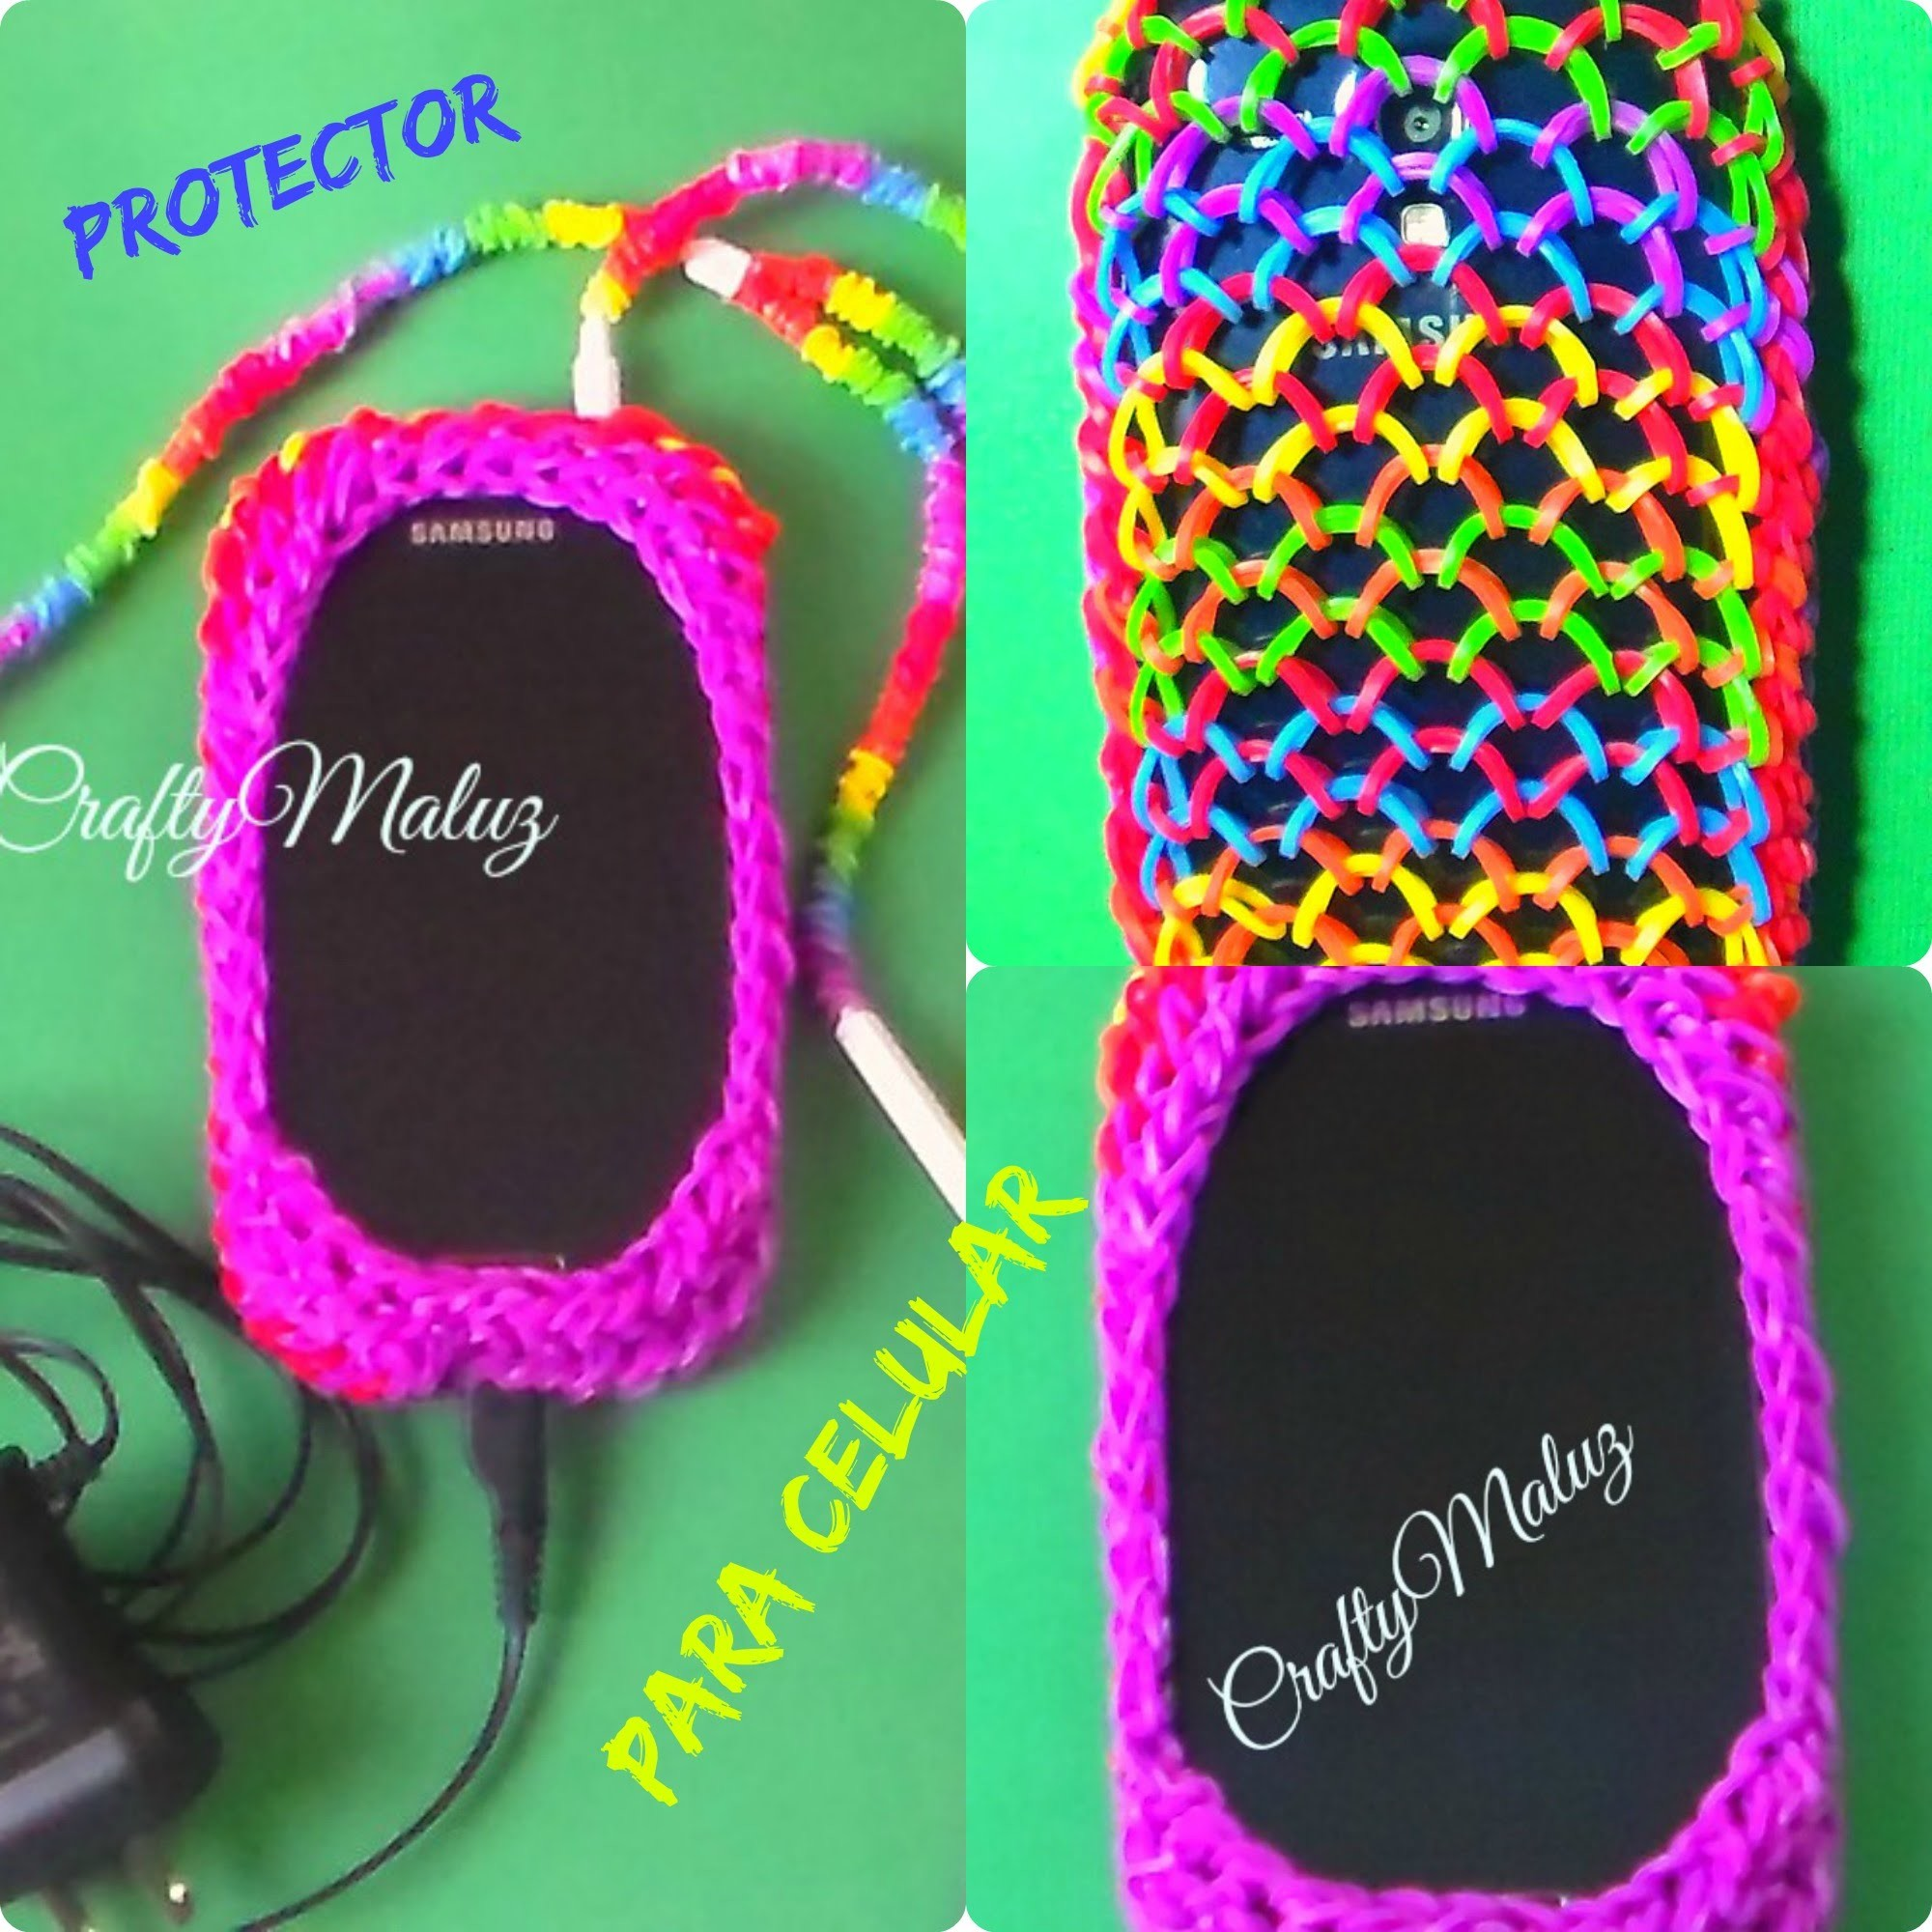 Como Hacer Protector para  Celular de Gomitas o ligas. How To Make A Rainbow Loom Phone Case